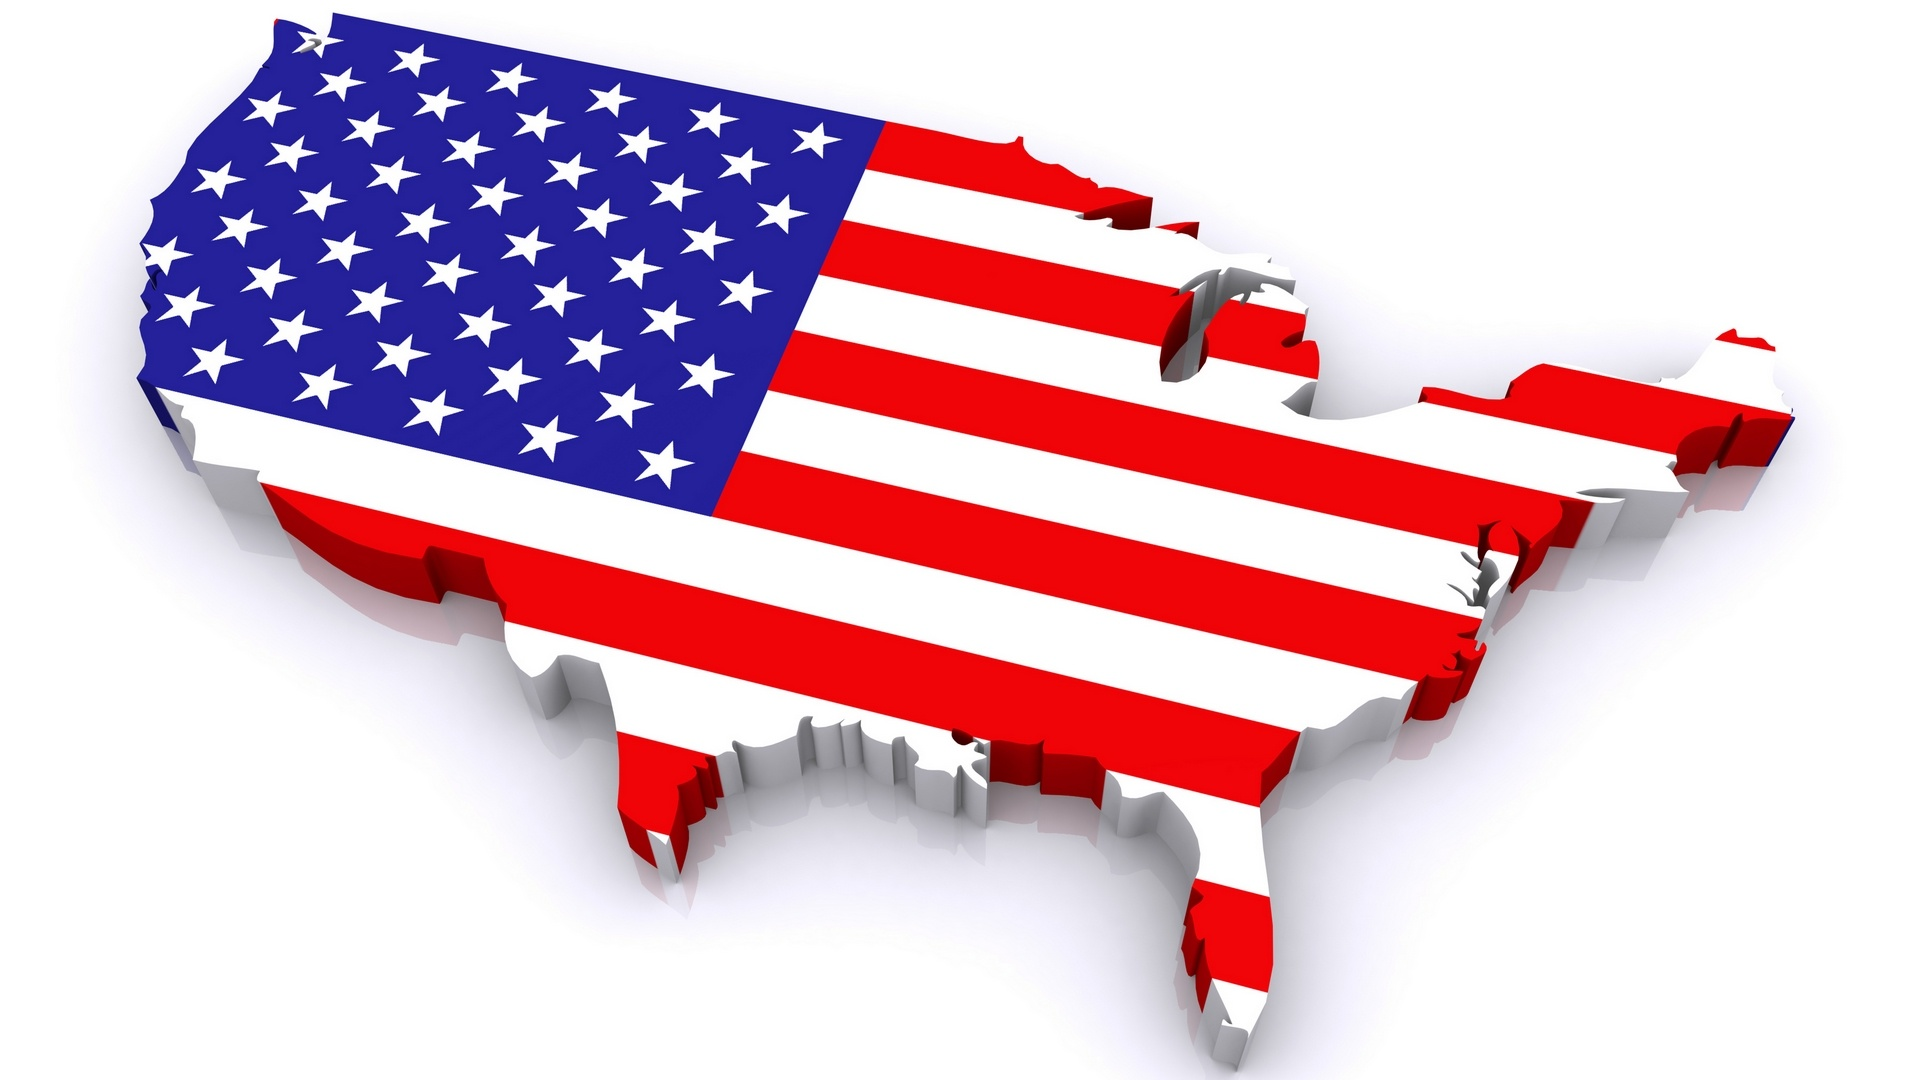 Us map flag clipart image black and white 17 Best images about America red white and blue on Pinterest ... image black and white